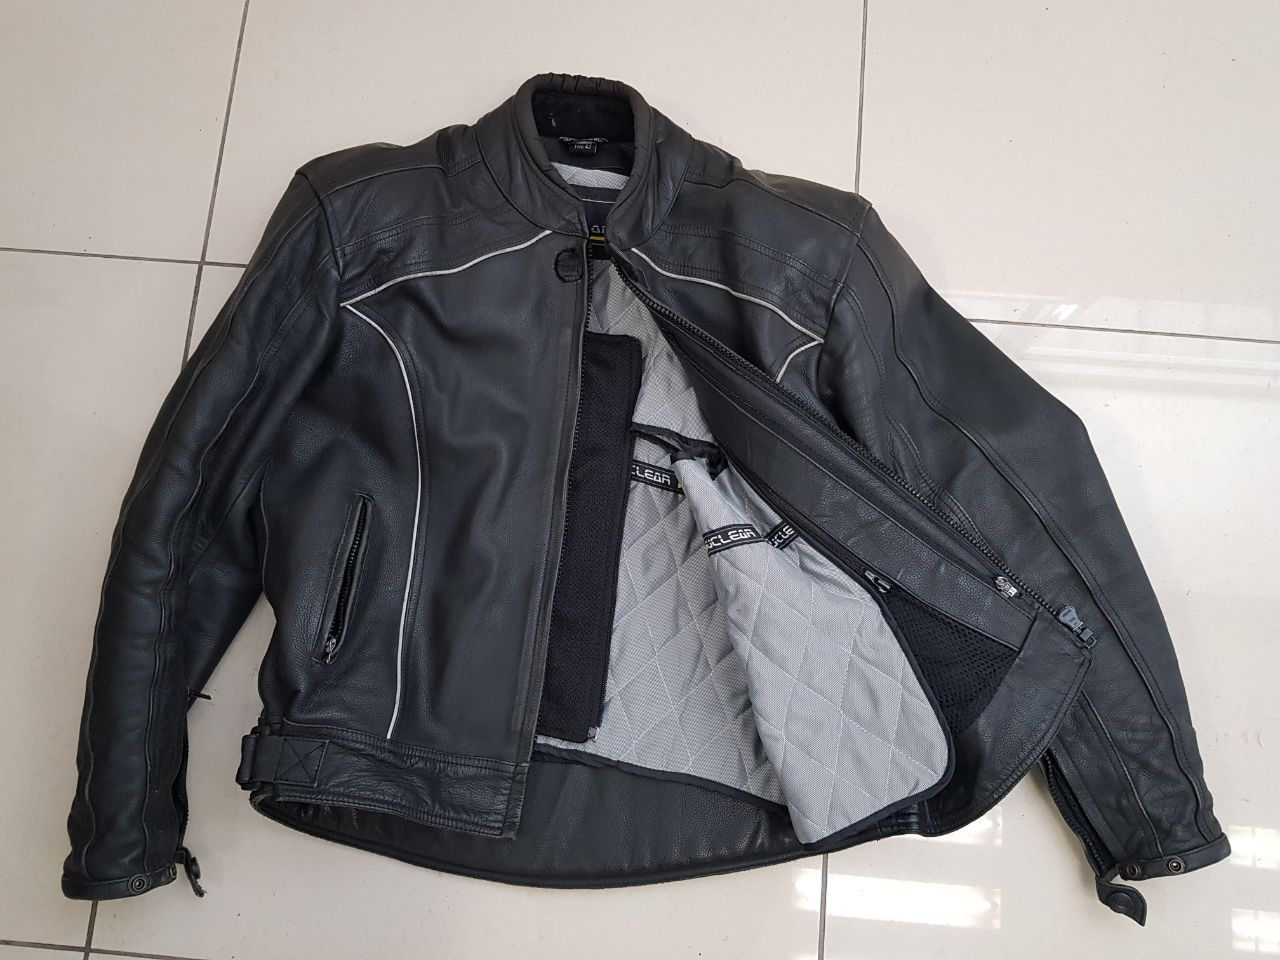 Leathers for superbike